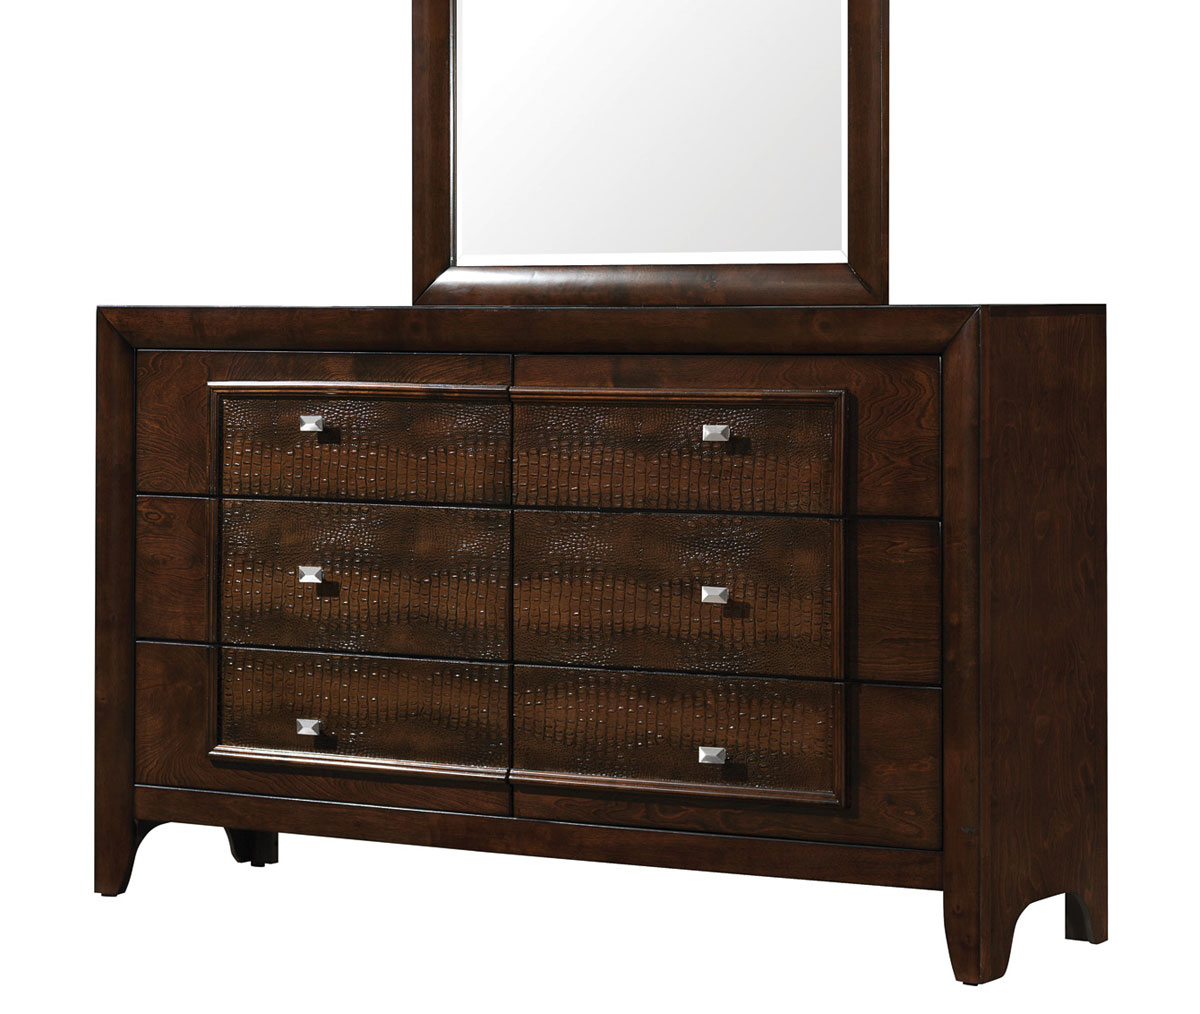 Coaster Marshall Dresser - Brown Crocodile